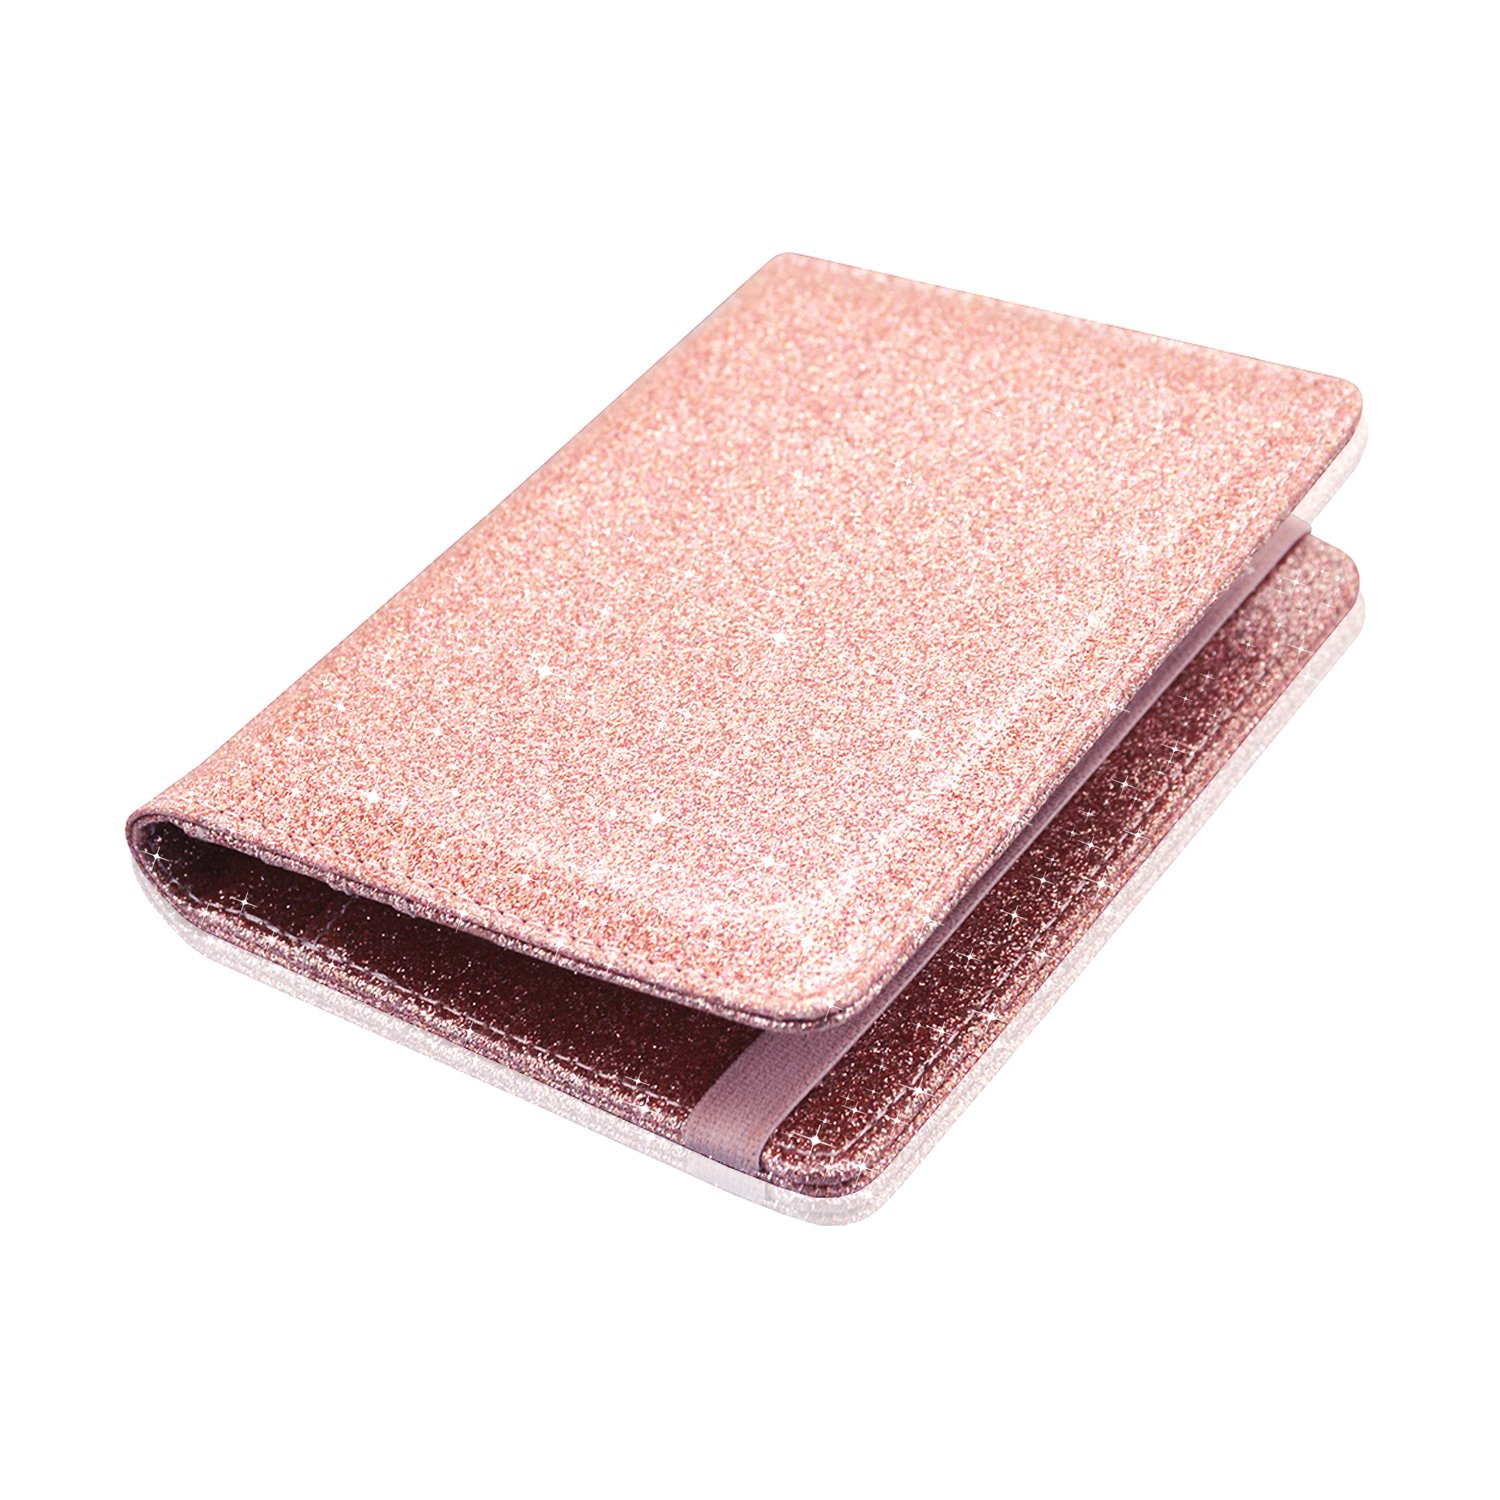 Passport Holder Cover, ACdream Travel Leather RFID Blocking Case Wallet for Passport with Elastic Band Closure, Rose Gold Glitter by ACdream (Image #7)